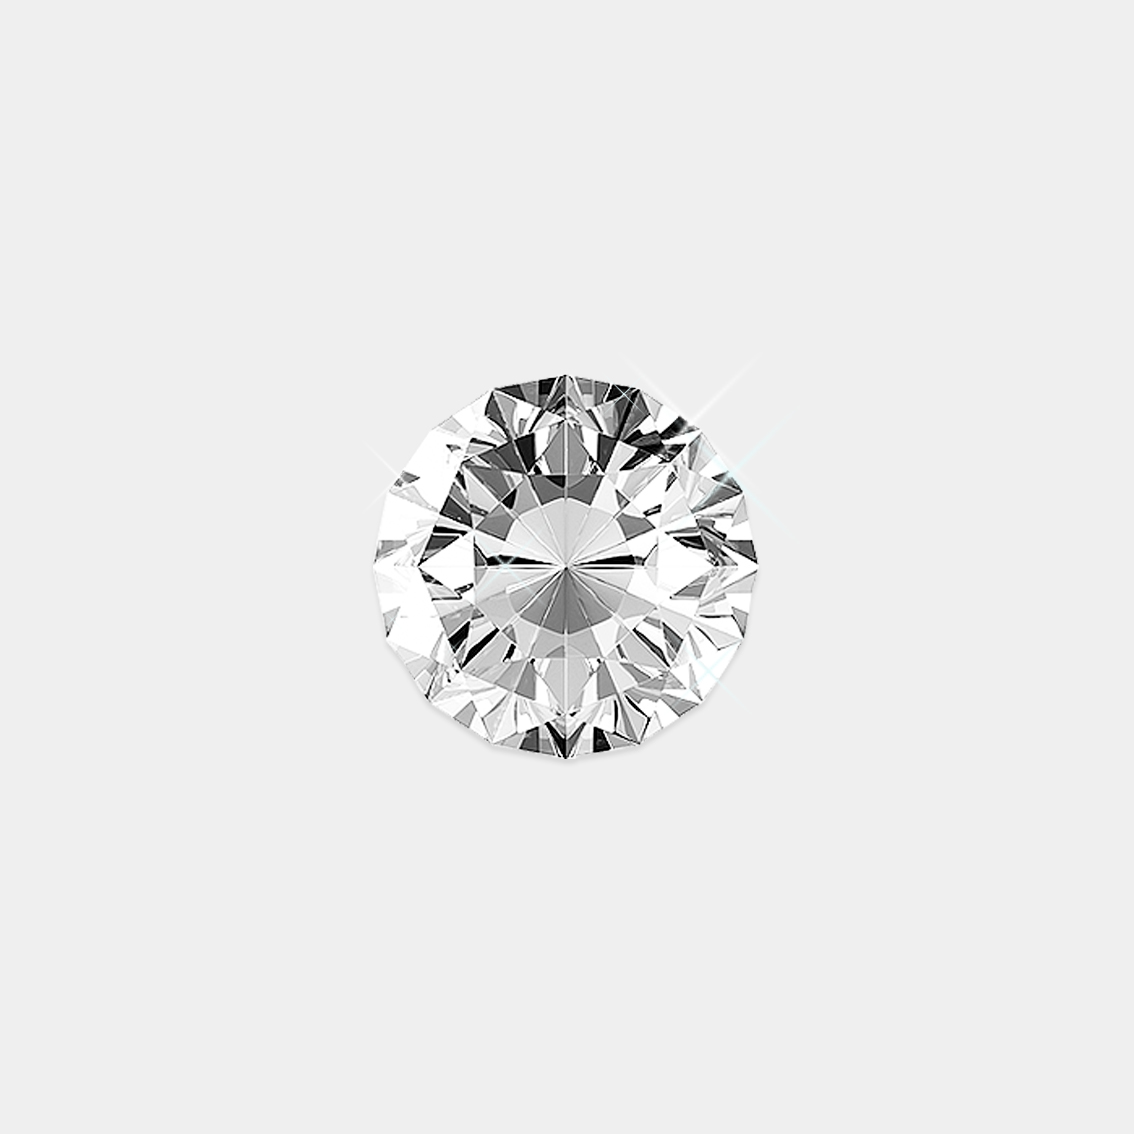 clarity quality amazing is to sparkle the global diadia color if and aura store diamond item brilliance rakuten a d en market i